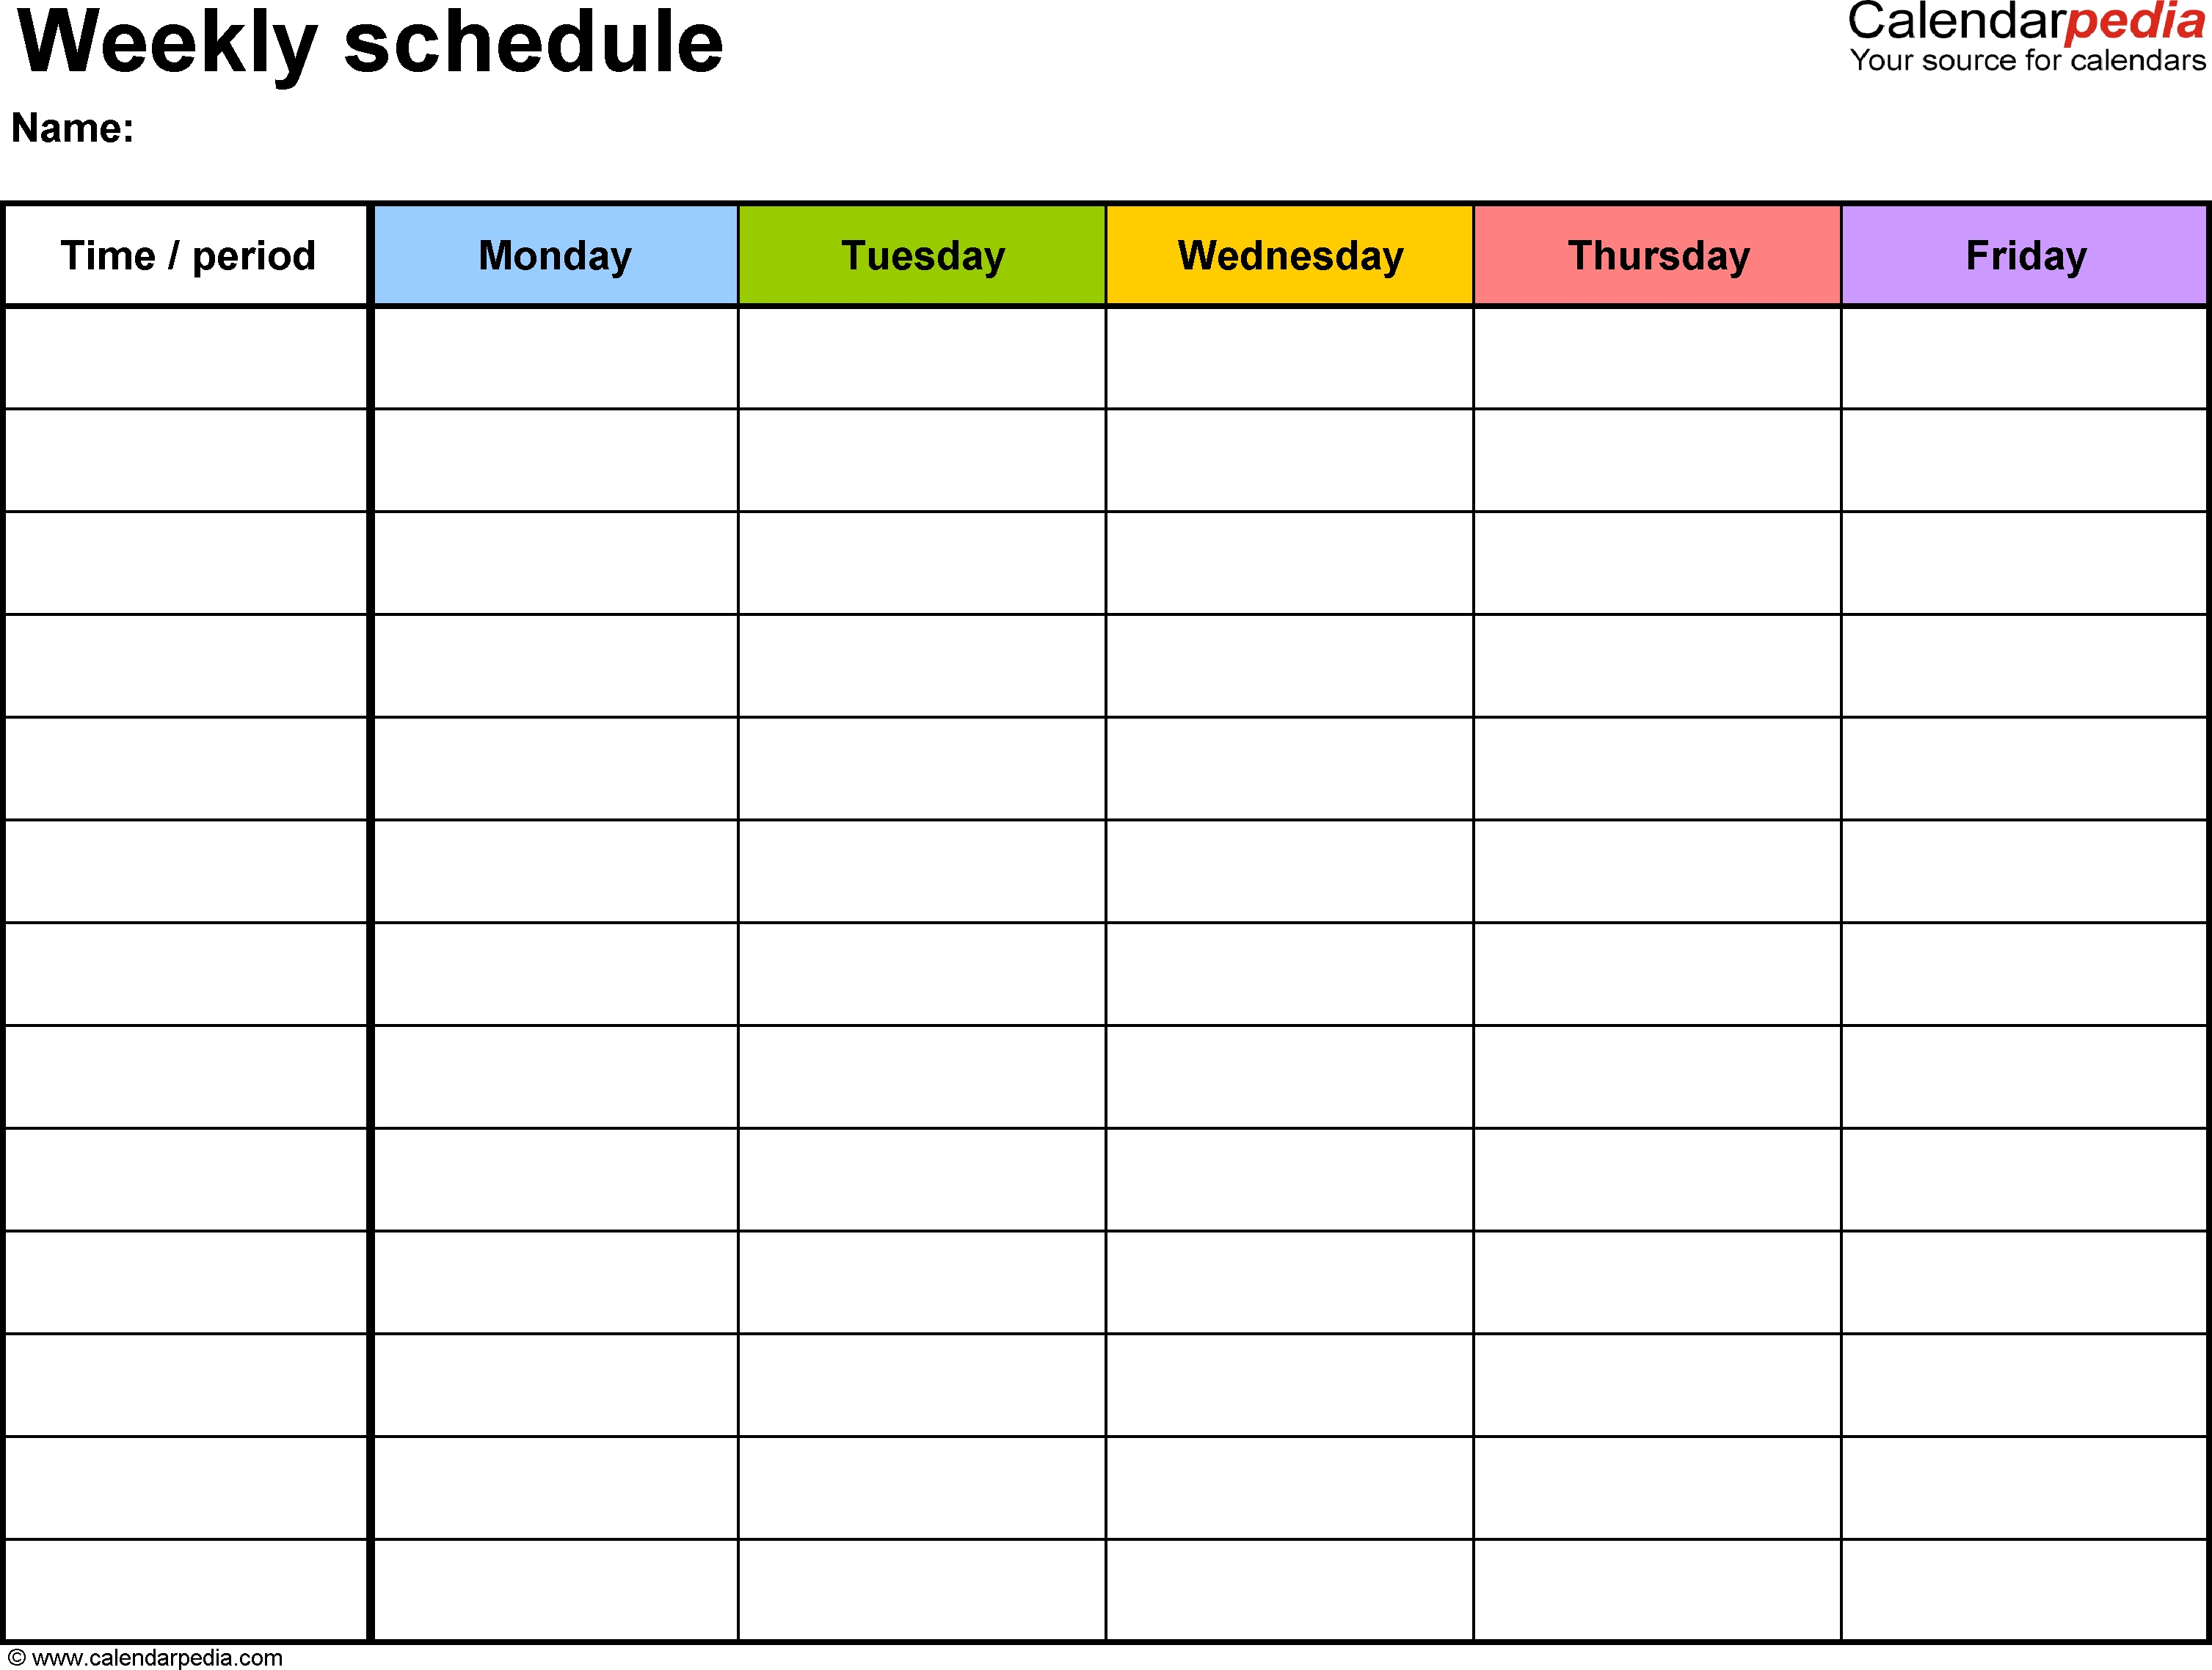 Free Weekly Schedule Templates For Word - 18 Templates with Day 7 Weekly Planner Template